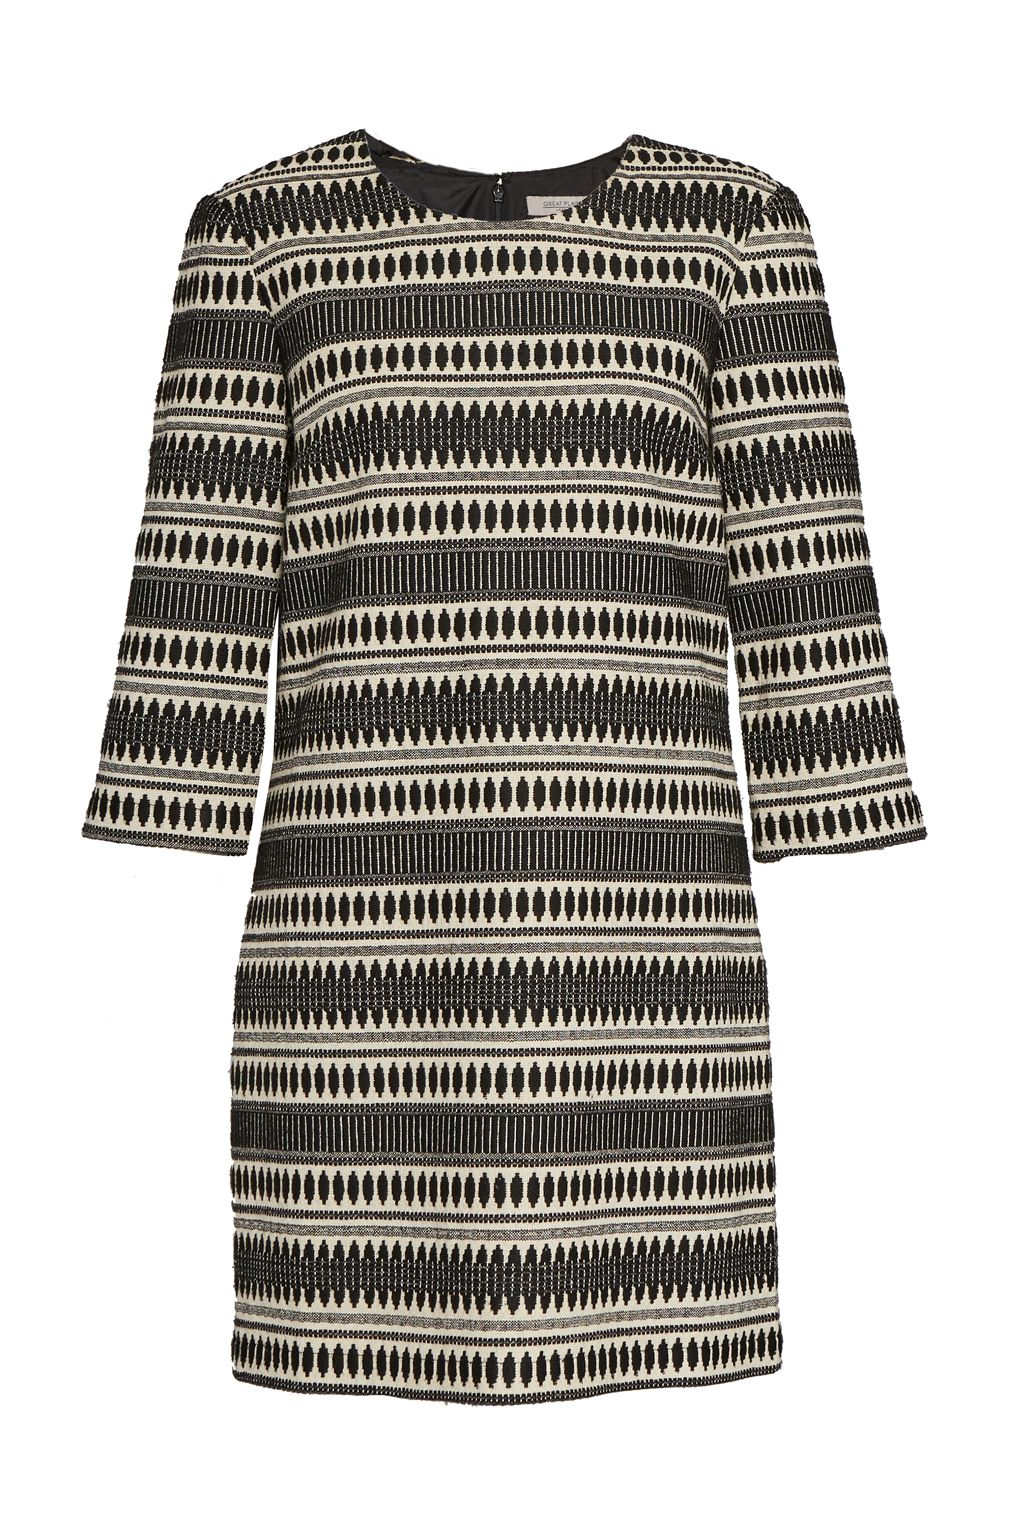 Great Plains Ula Stitch Jacquard Shift Dress, Multi-Coloured